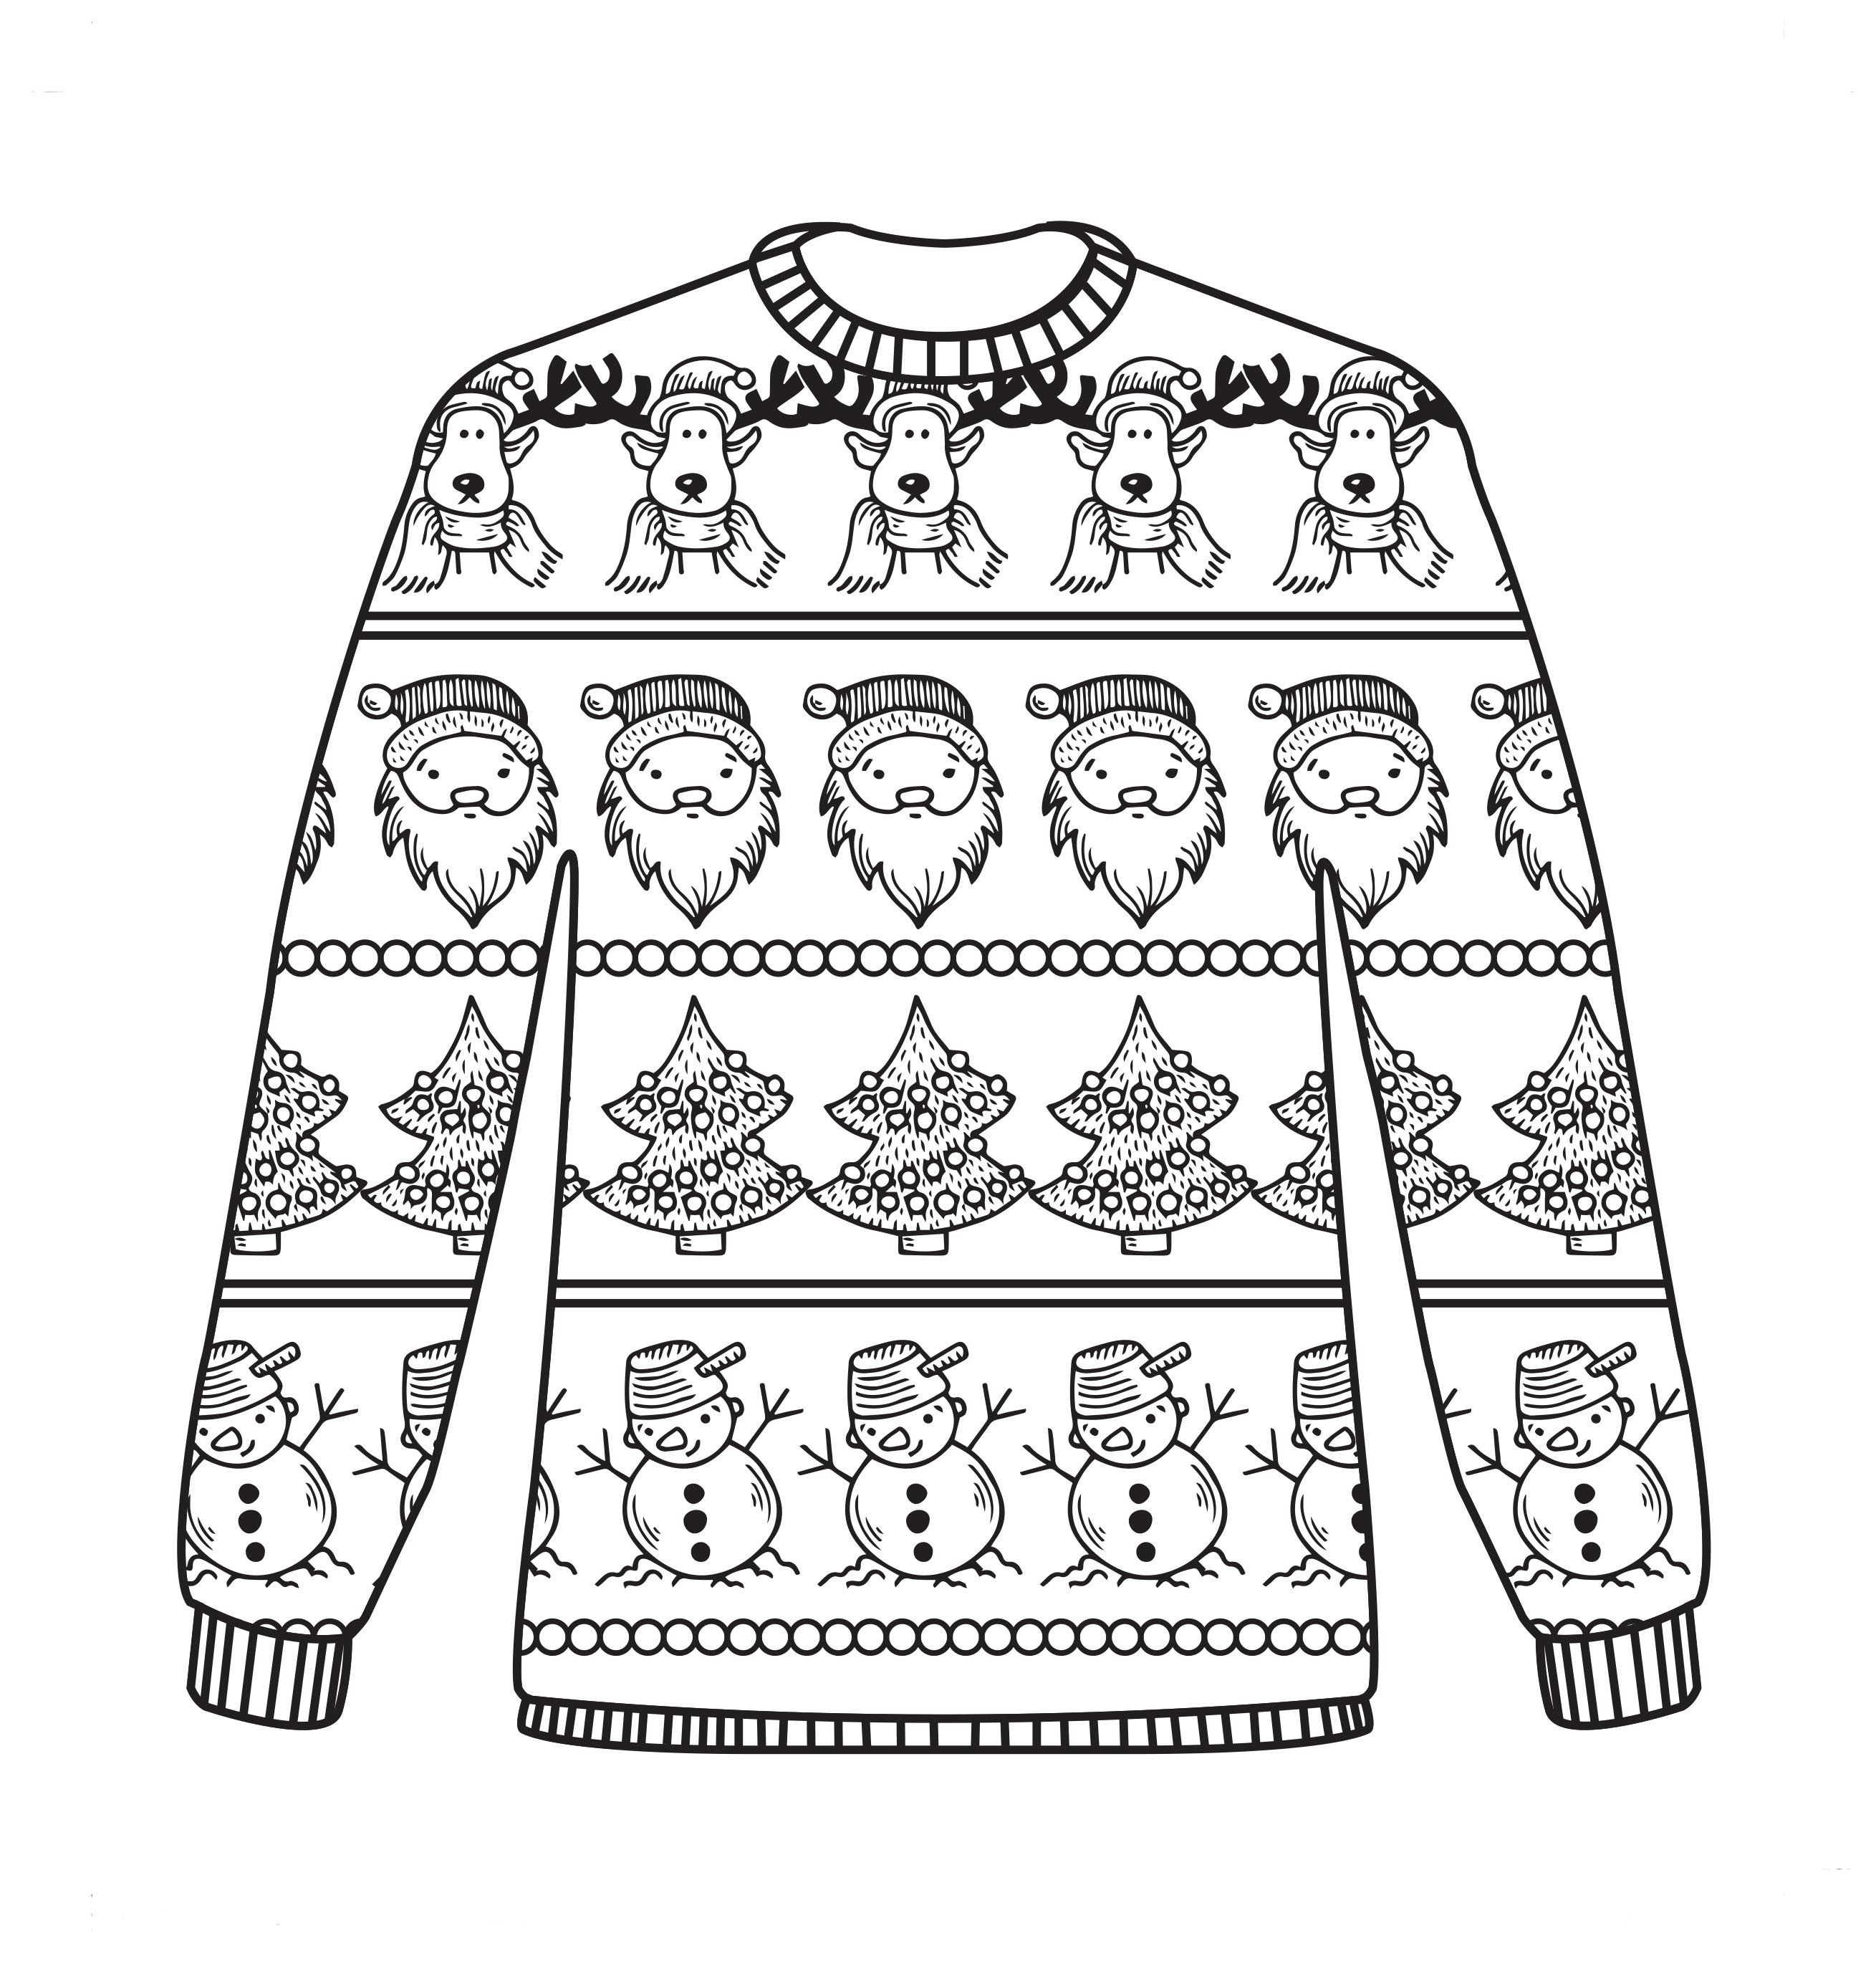 Ugly sweater patterns clipart black and white graphic Free Christmas colouring sheets! | Coloring Pages (Fashion ... graphic